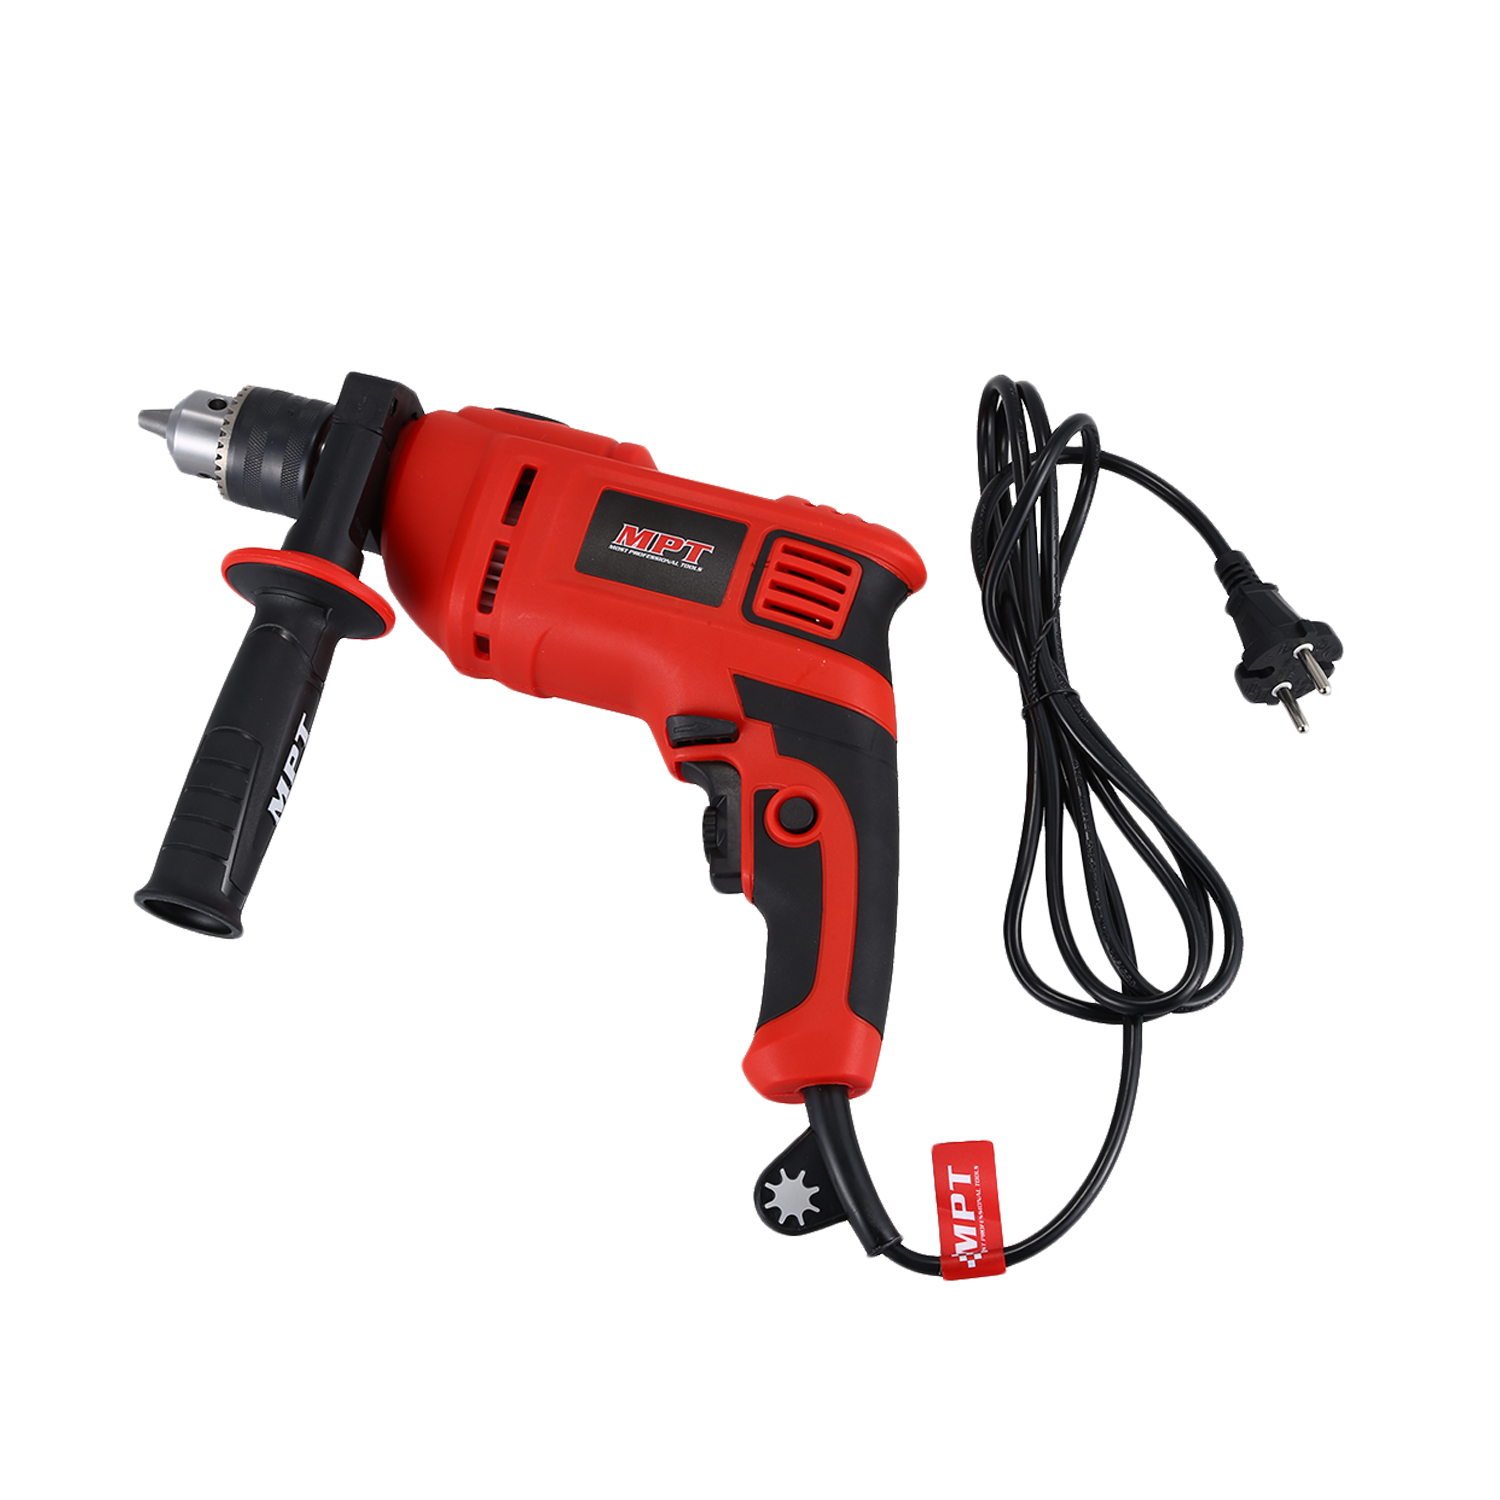 MPT 13mm Variable Speed Impact Drill Electric Hand Drill Household Impact Drill 220v Multi-function Electric Screwdri multi purpose impact drill for household use la414413 upholstery drilling wall percussion impact drill set power tools 220v 810w